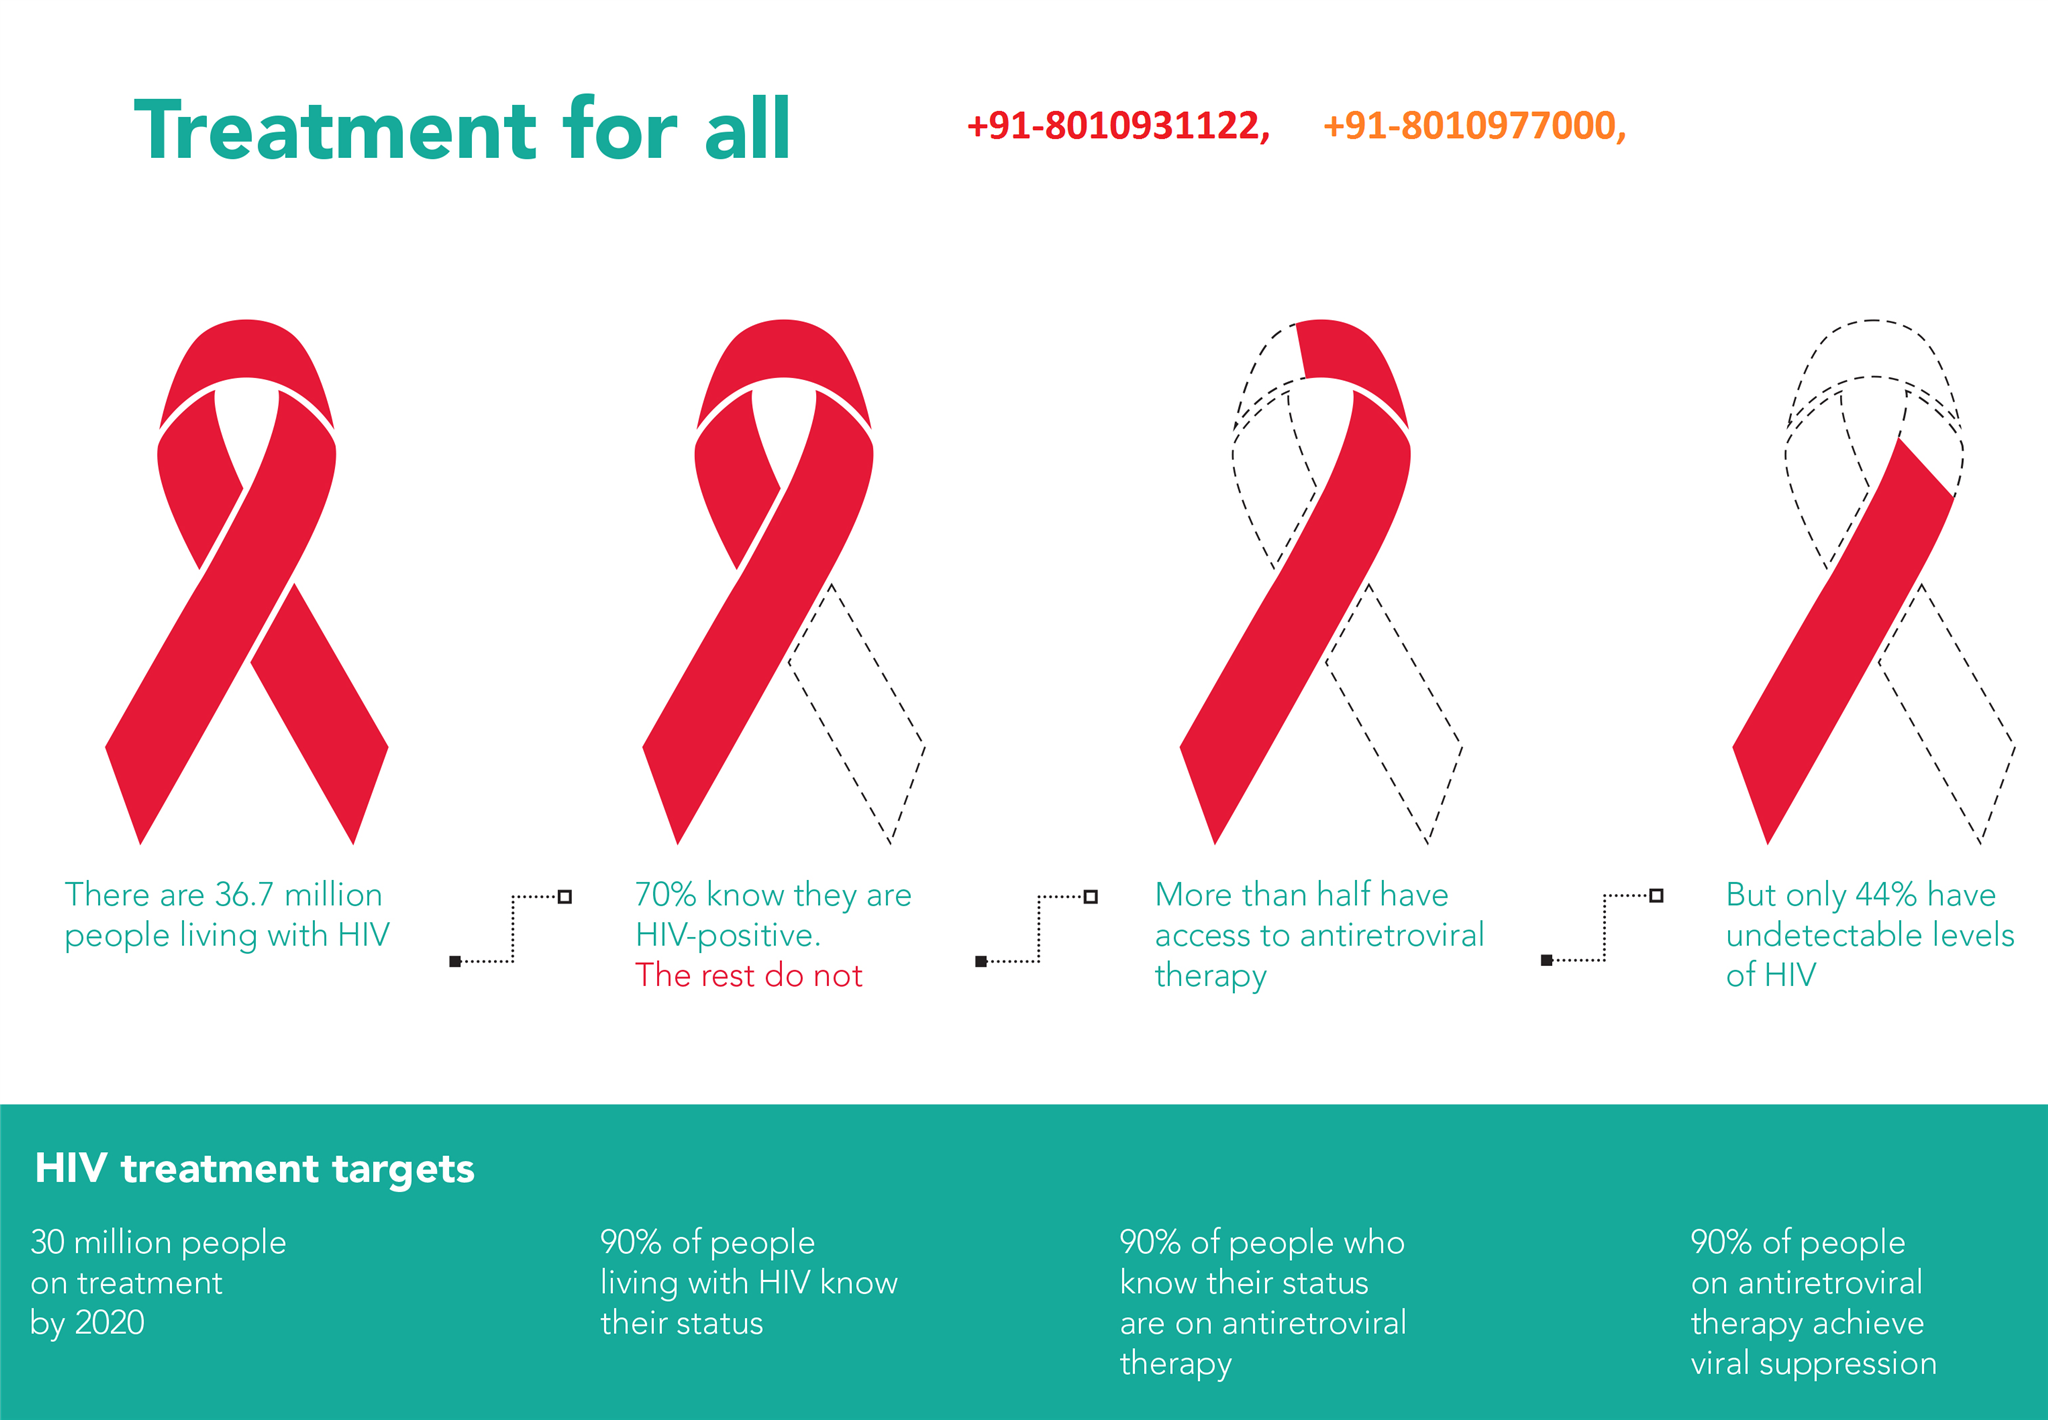 hiv testing and counselling in Karol bagh 8010977000